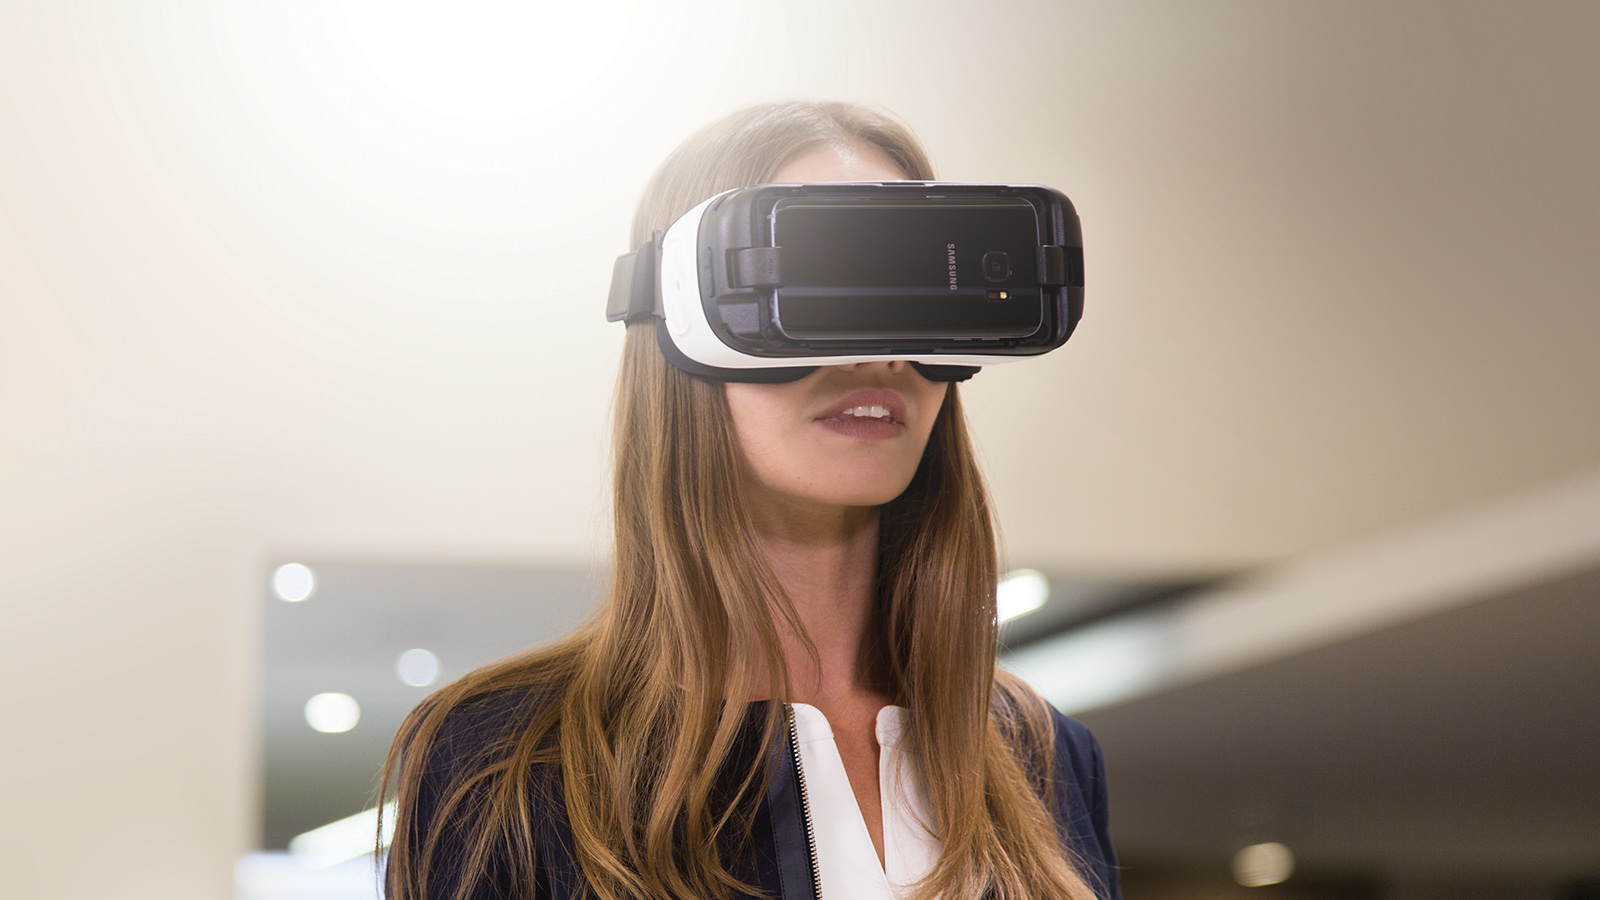 A woman wearing a VR headset